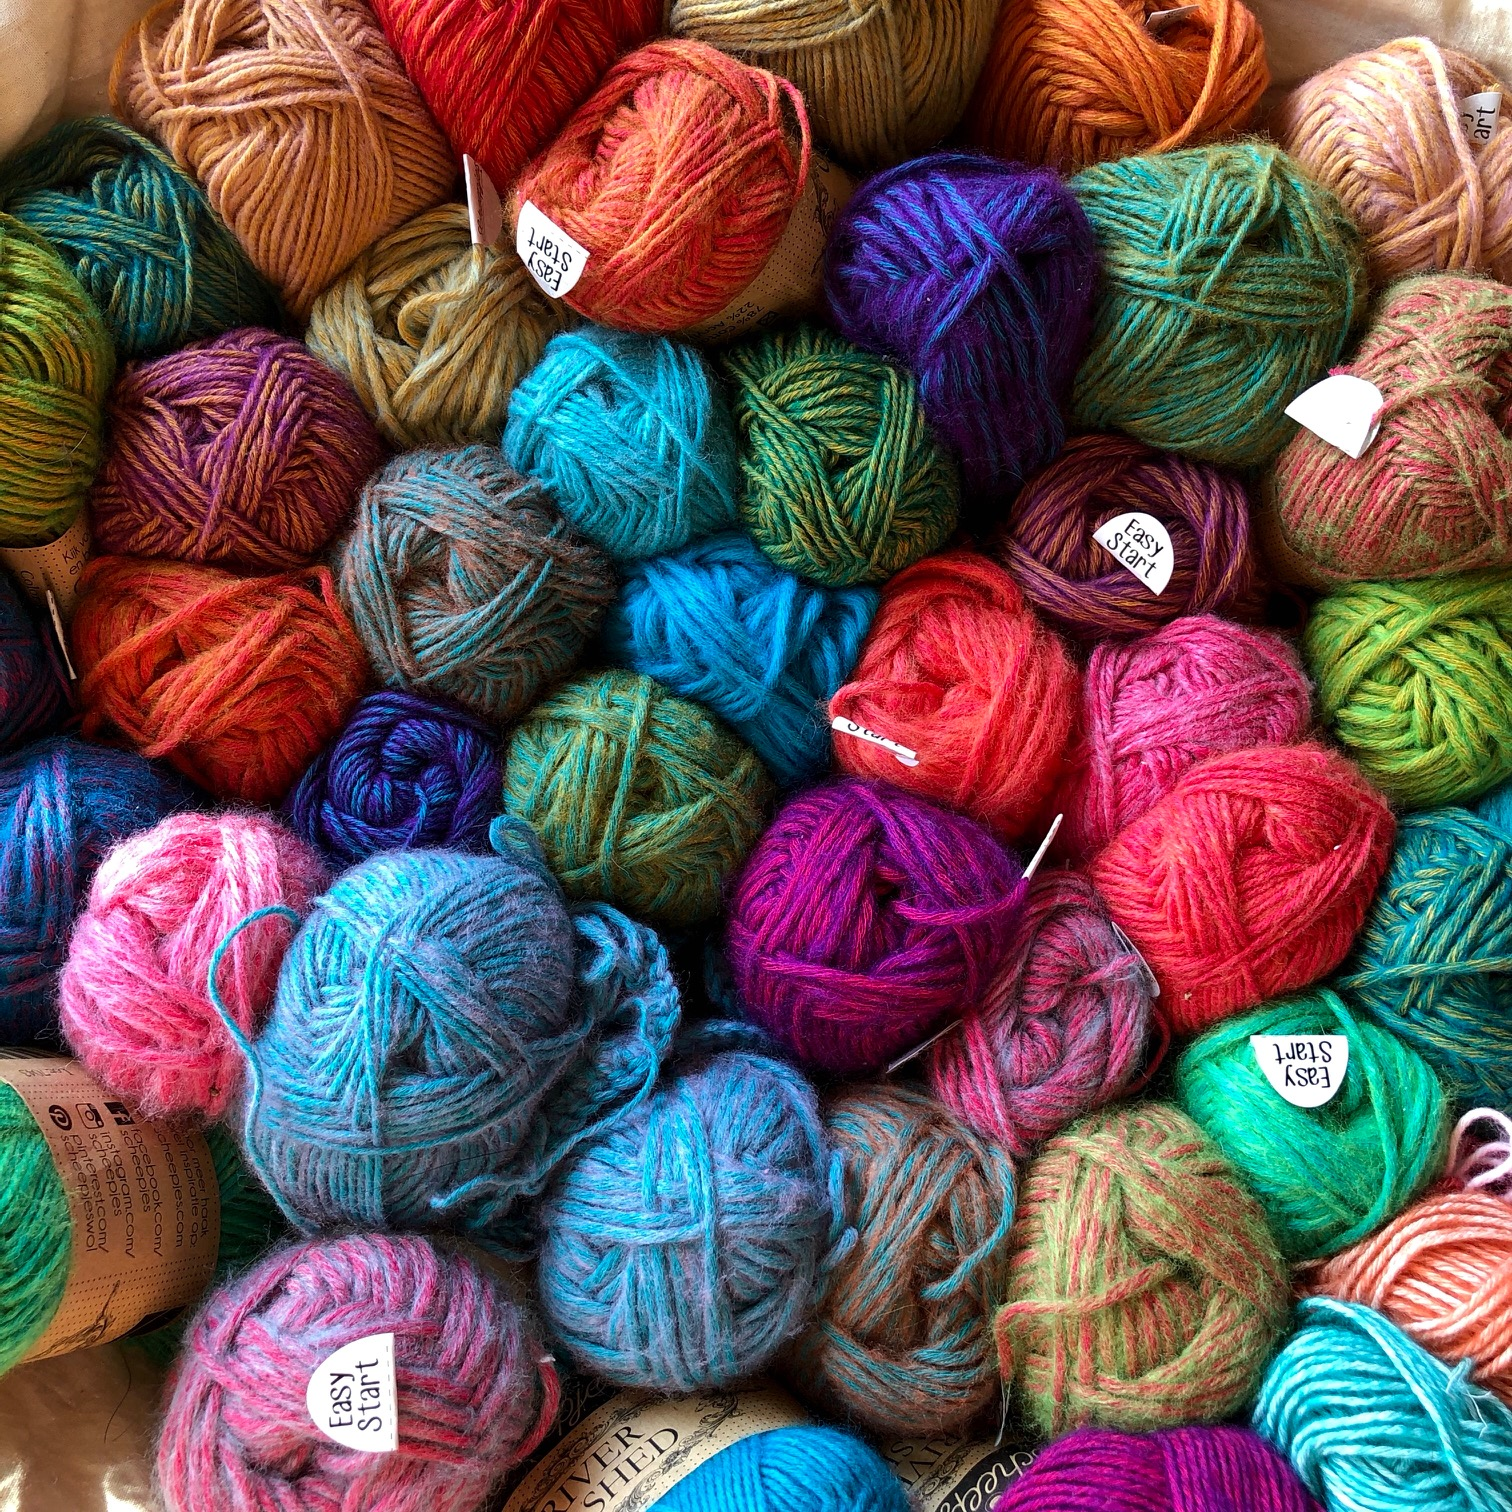 New Yarn, New Me: Creative happiness through painting with fiber